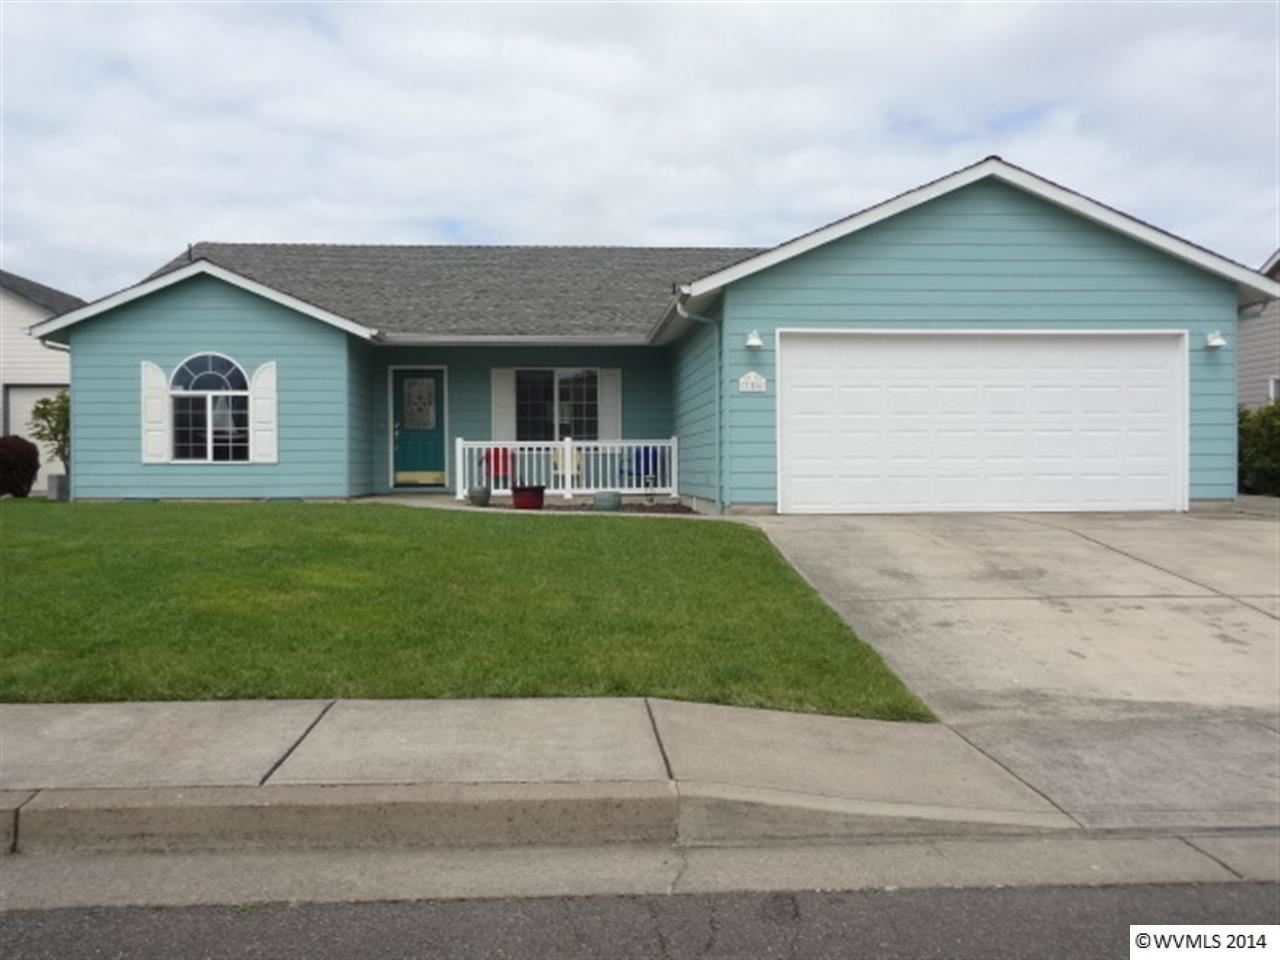 756 Mooney St, Independence, OR 97351